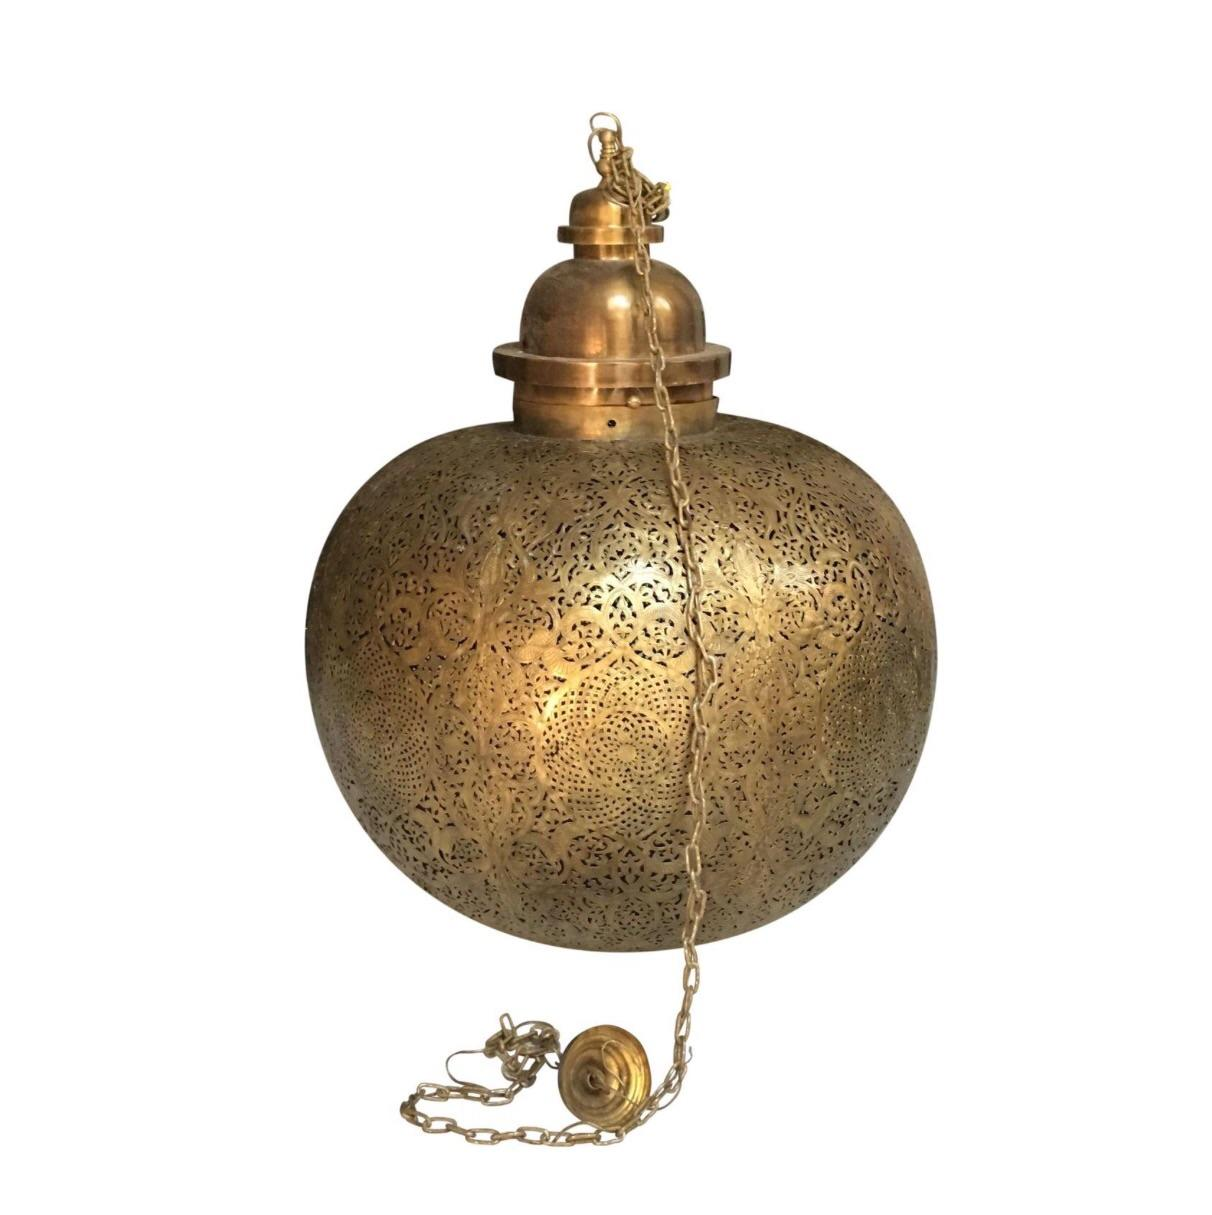 Image of Moroccan Ceiling Light Fixture